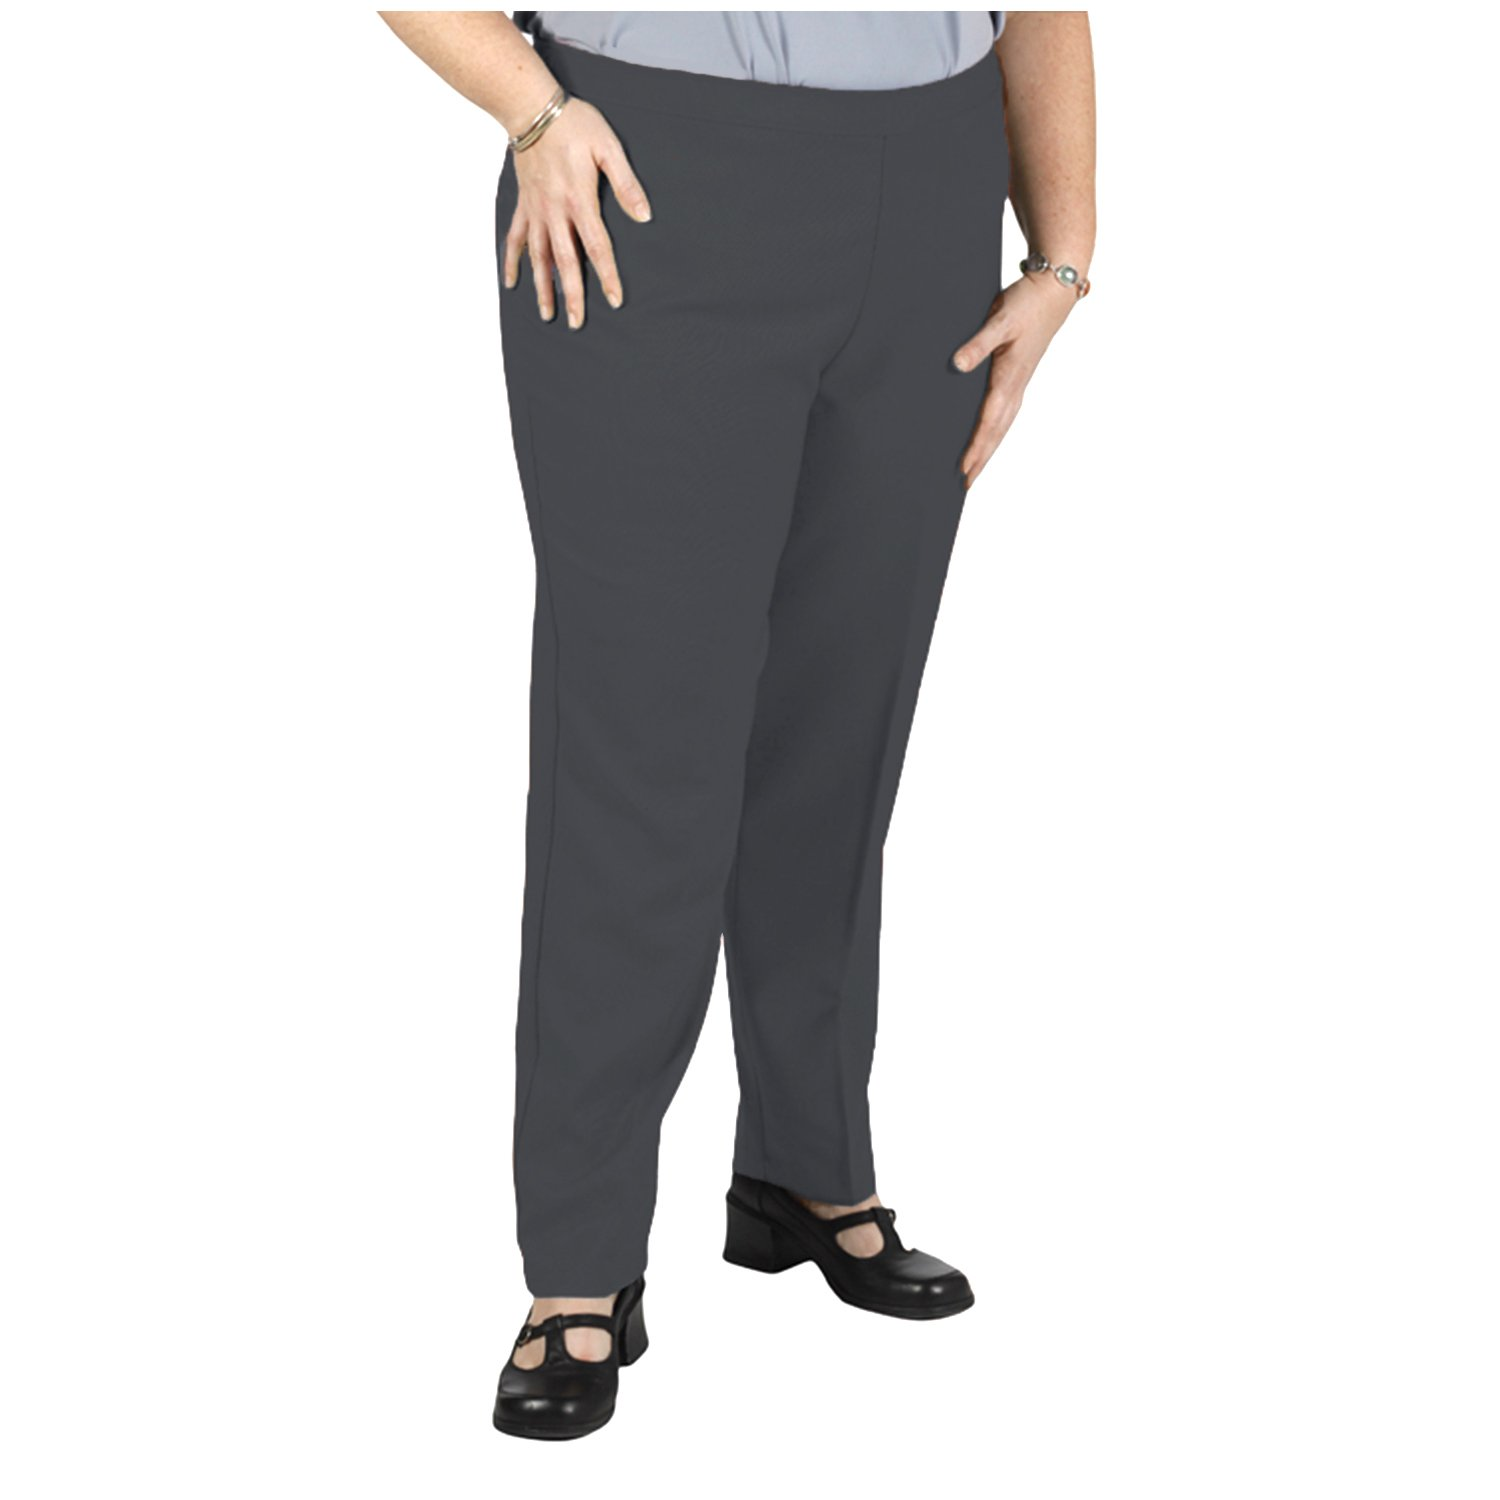 e74f8270486 Bend Over Women s Plus Size Elastic Waist Pull-On Pants at Amazon Women s  Clothing store